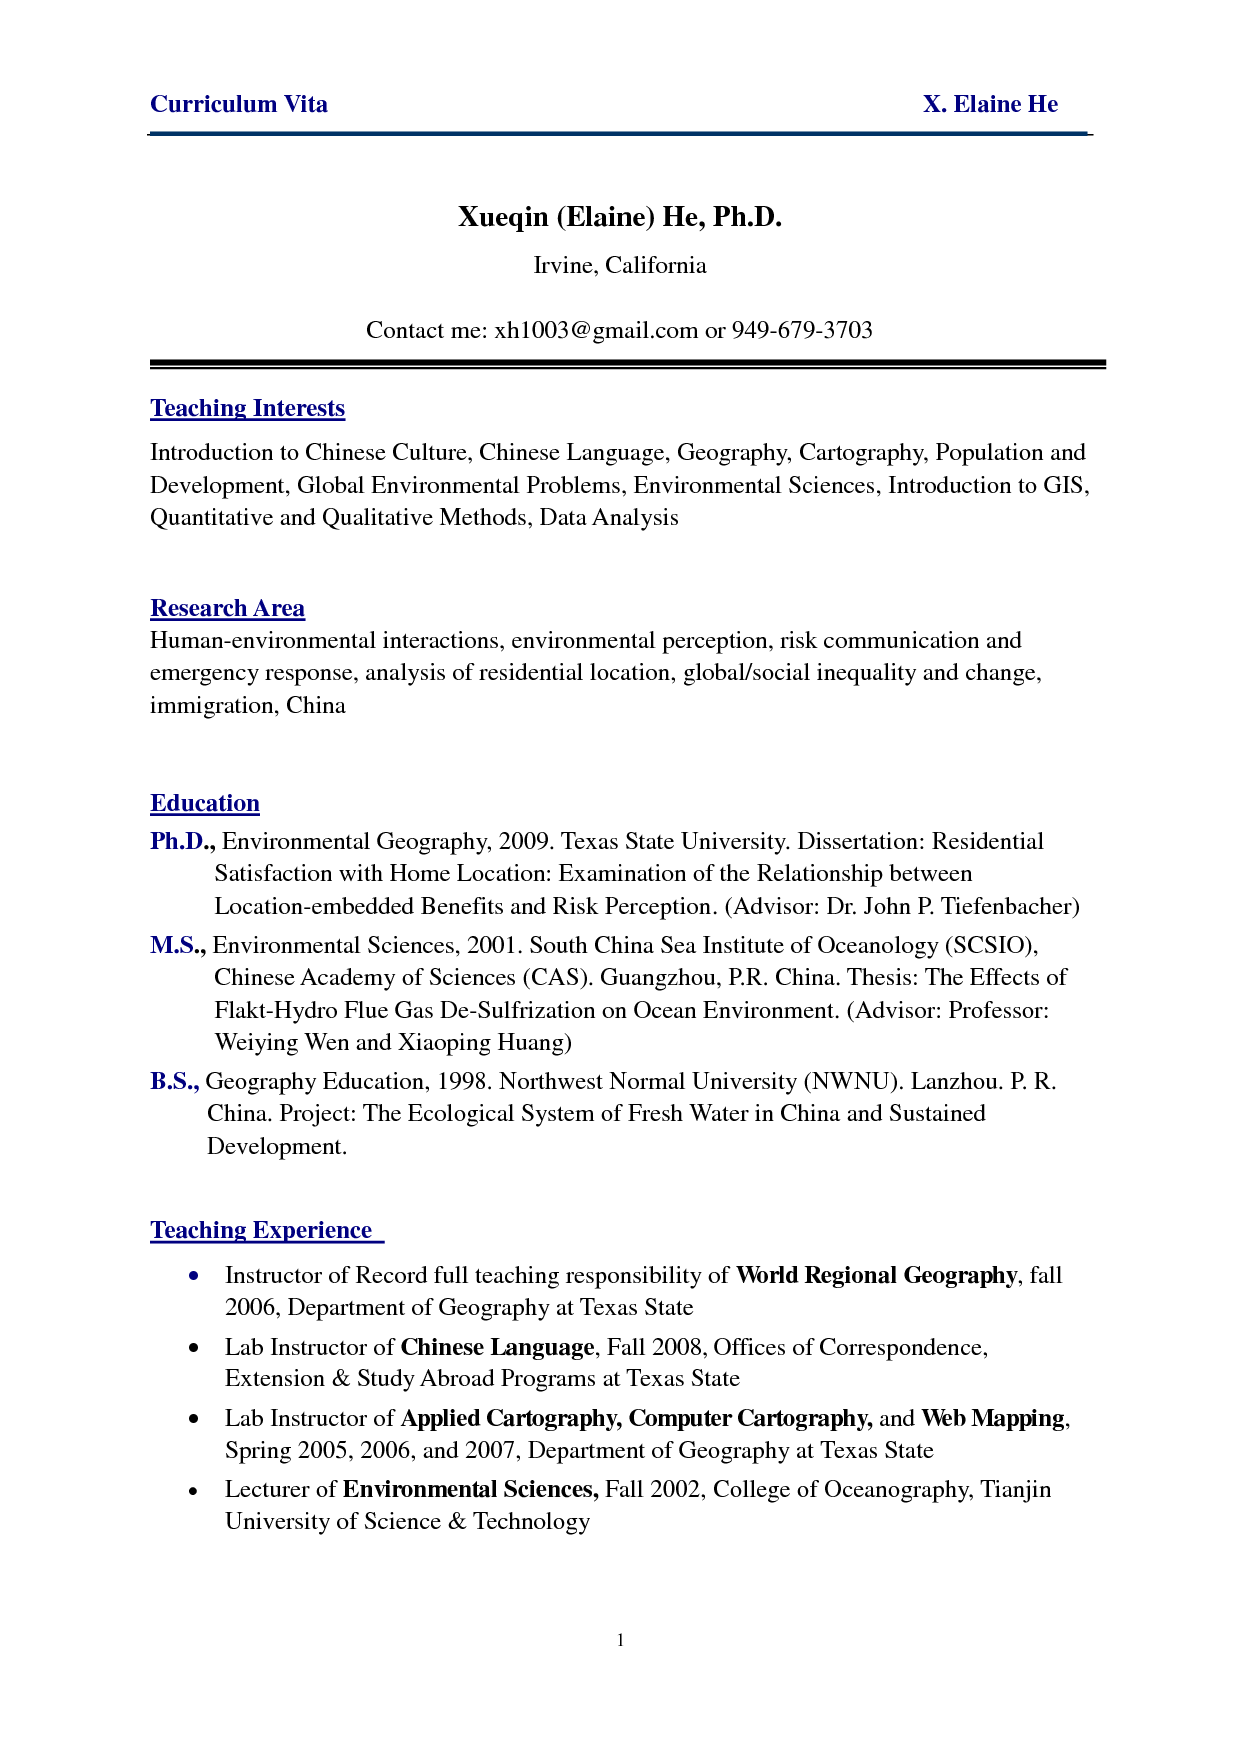 new nurse graduate cover letter grad resume template format for lpn nursing sample gallery photos best free home design idea inspiration - Cover Letter For Lpn Resume